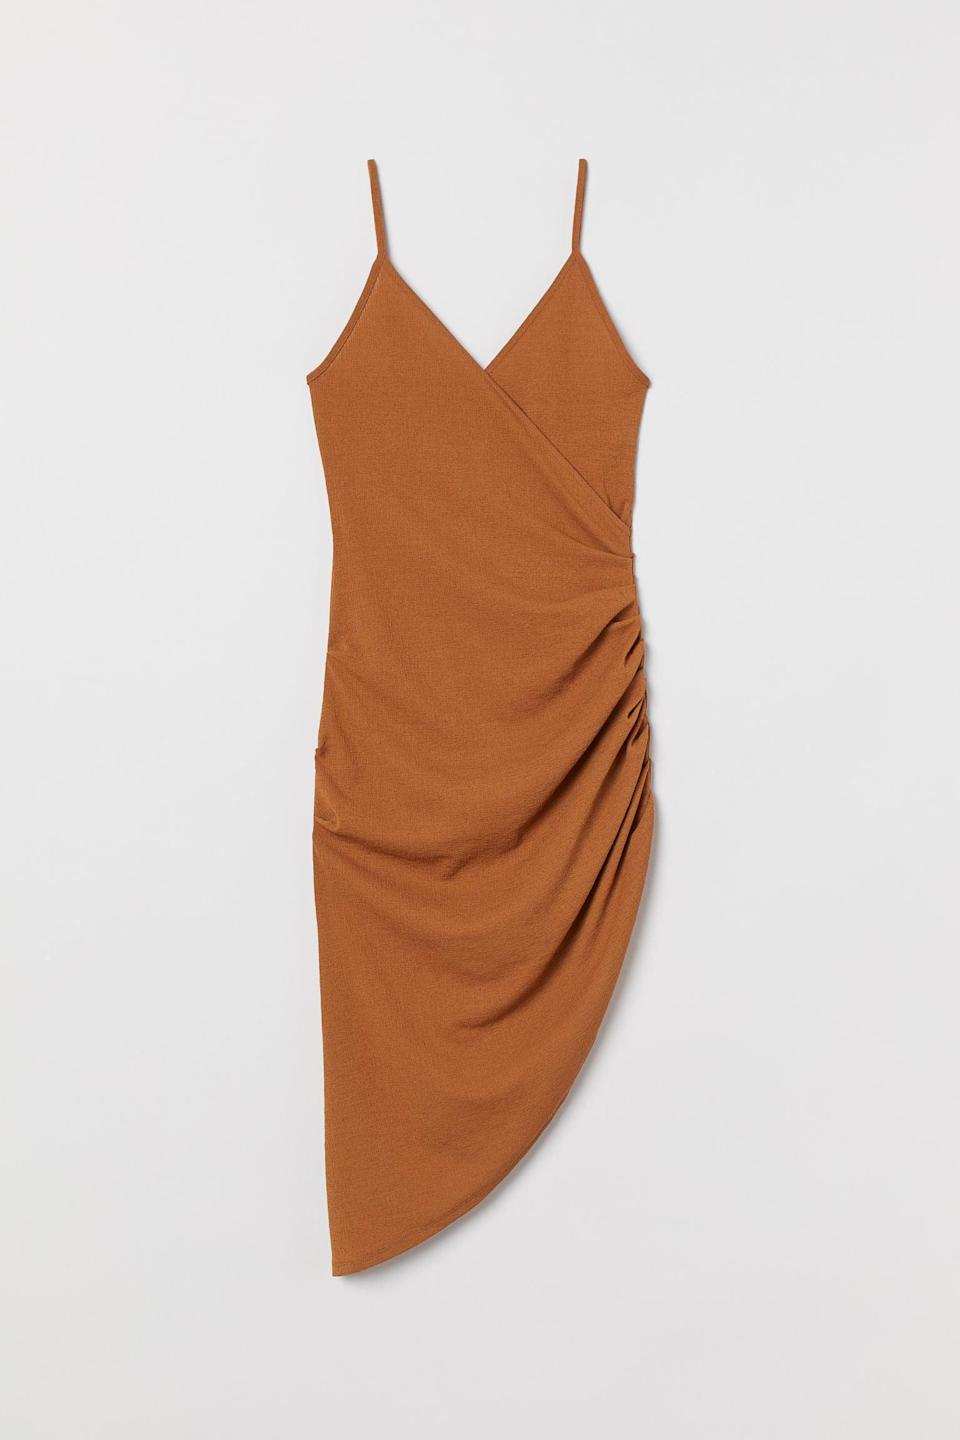 <p>The drawstring details of this <span>H&amp;M Draped Jersey Dress</span> ($10, originally $40) make it unexpected and cool.</p>